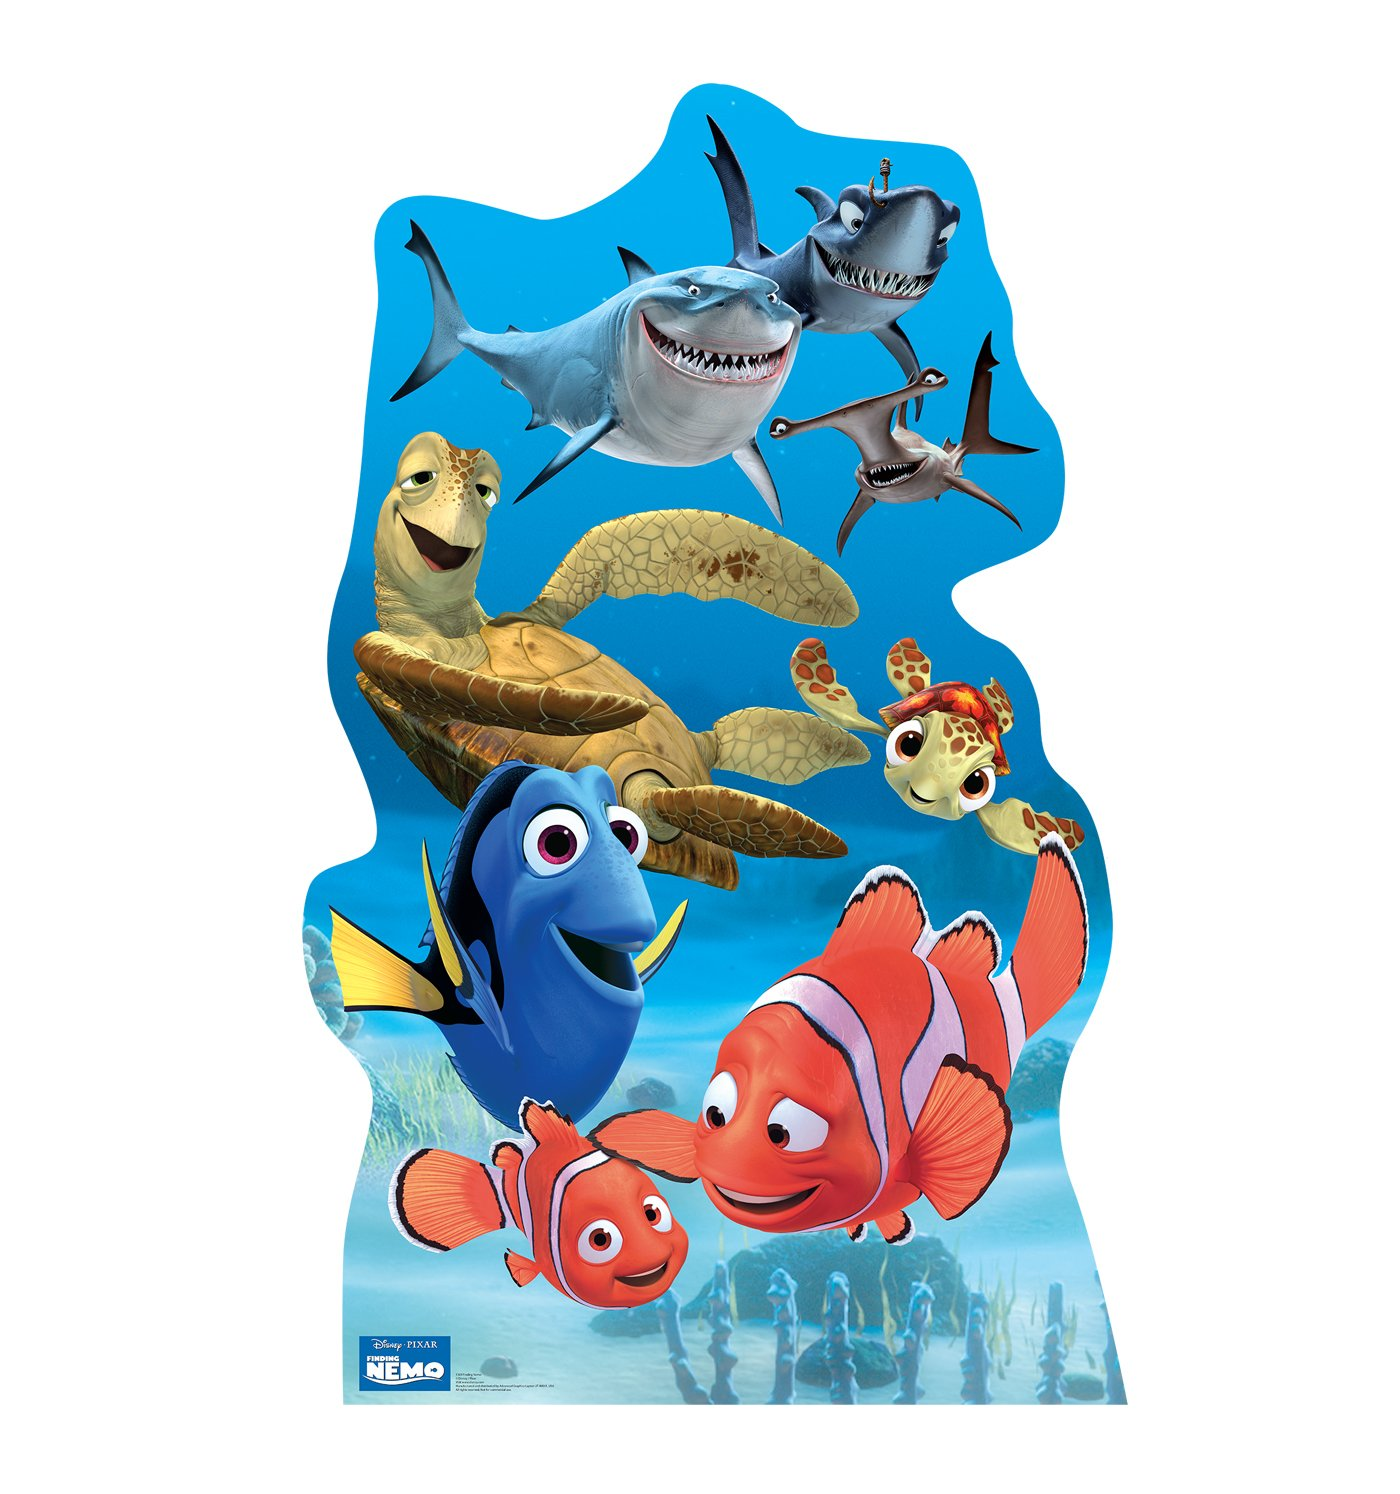 Finding Nemo Group - Disney Pixar's Finding Nemo - Advanced Graphics Life Size Cardboard Standup by Advanced Graphics